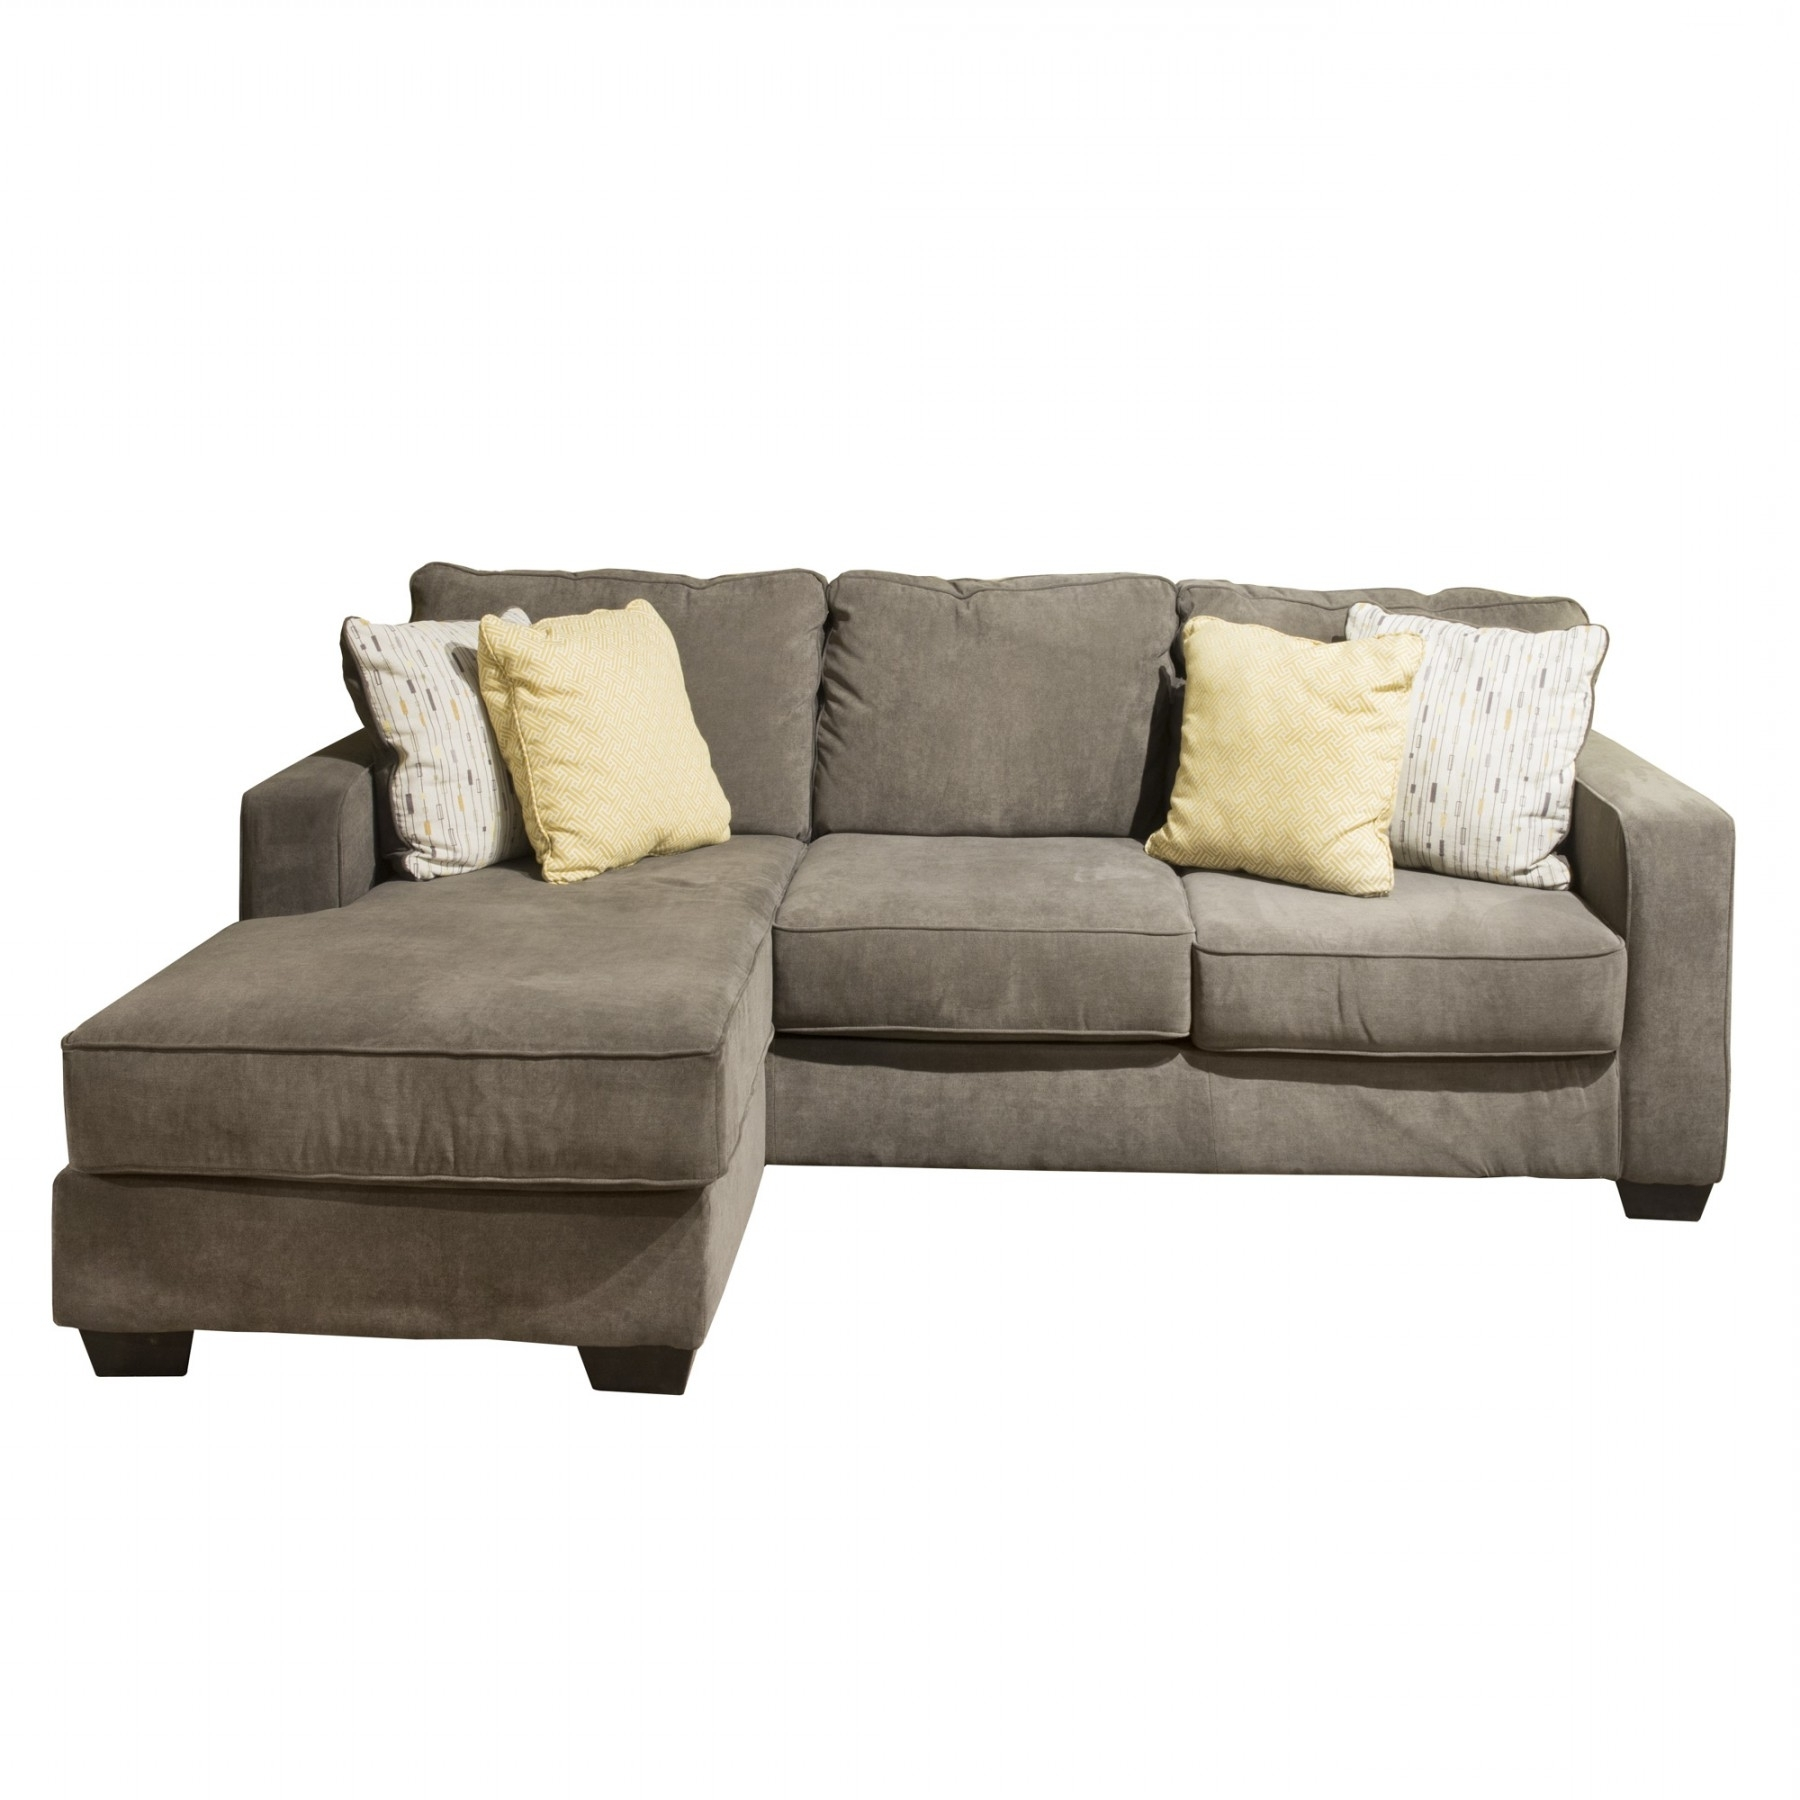 Most Up To Date Hodan Sofas With Chaise Intended For Sofa Bernie